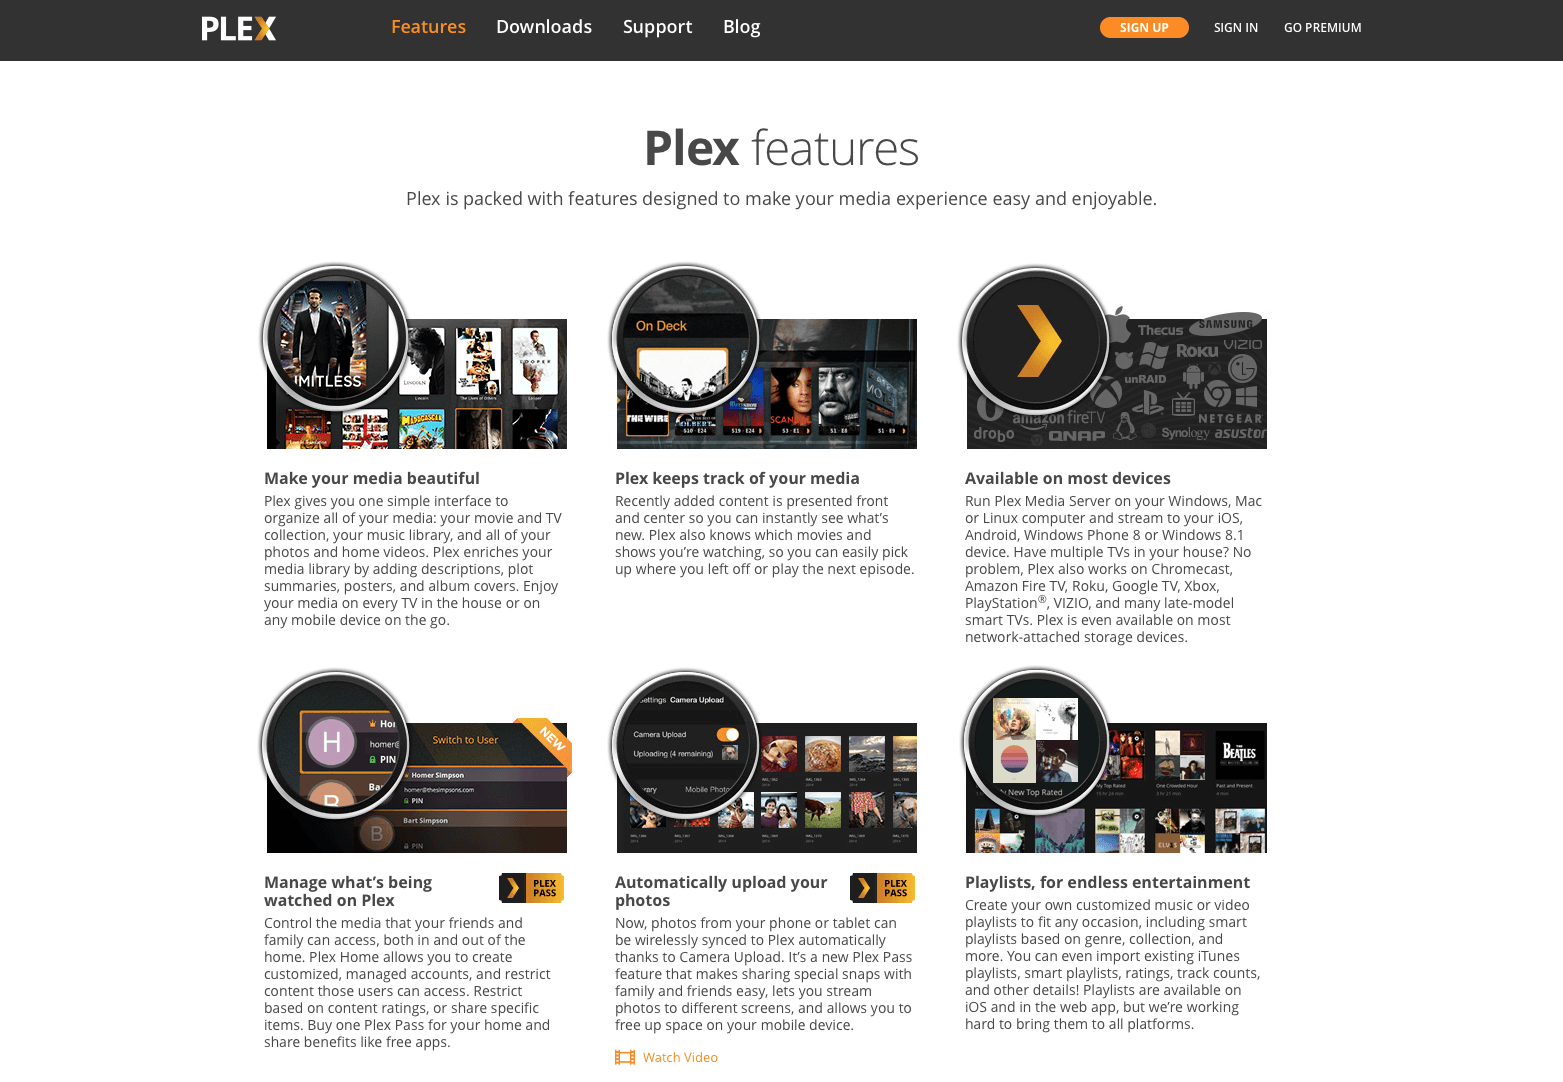 Plex PlexPass features